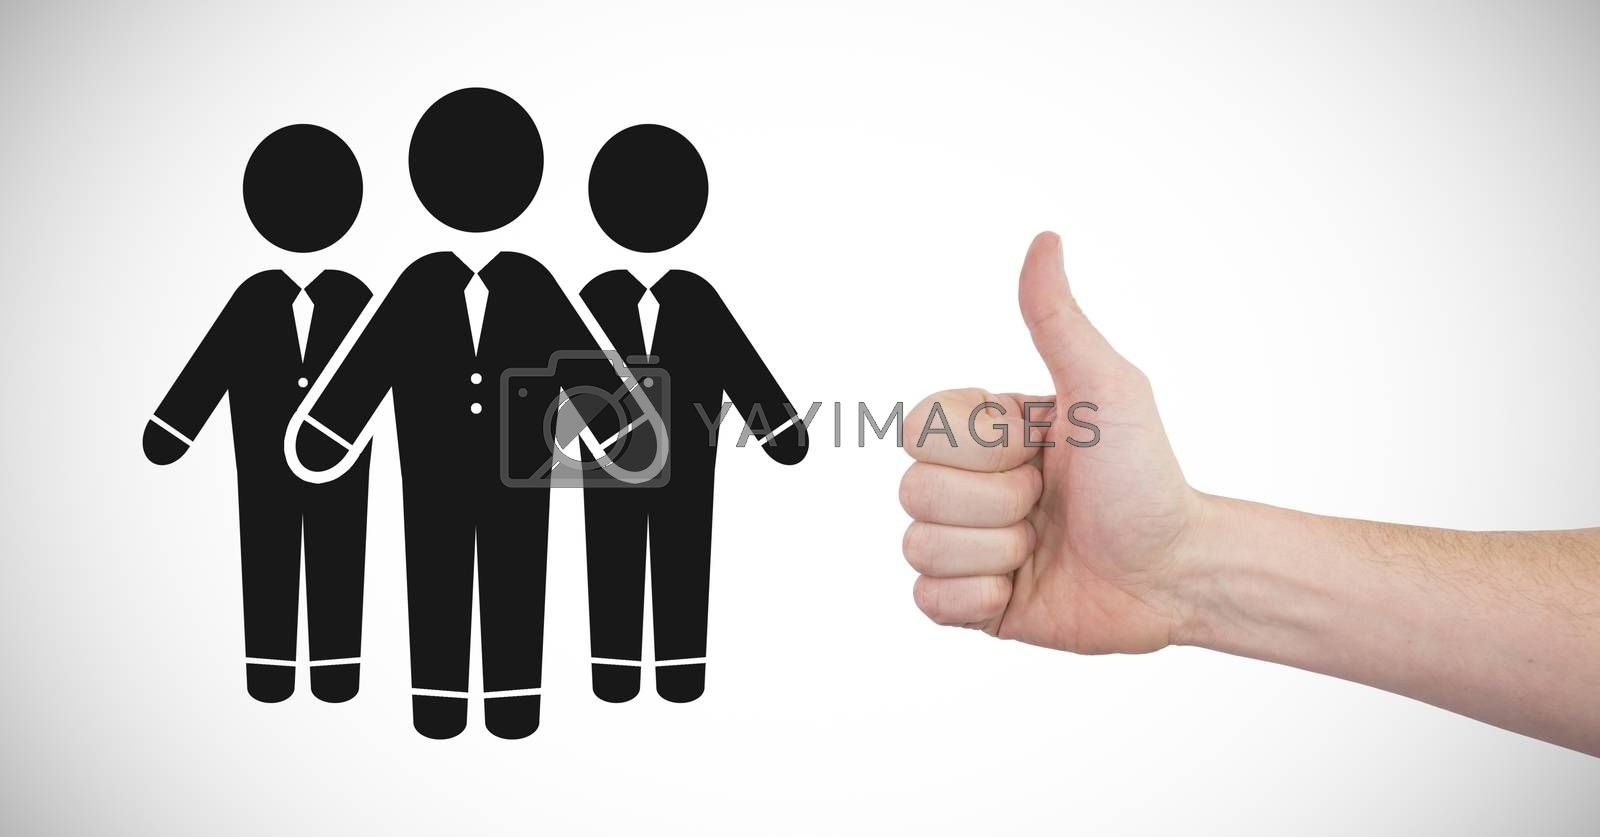 Digital composite of Thumbs up with people group icon